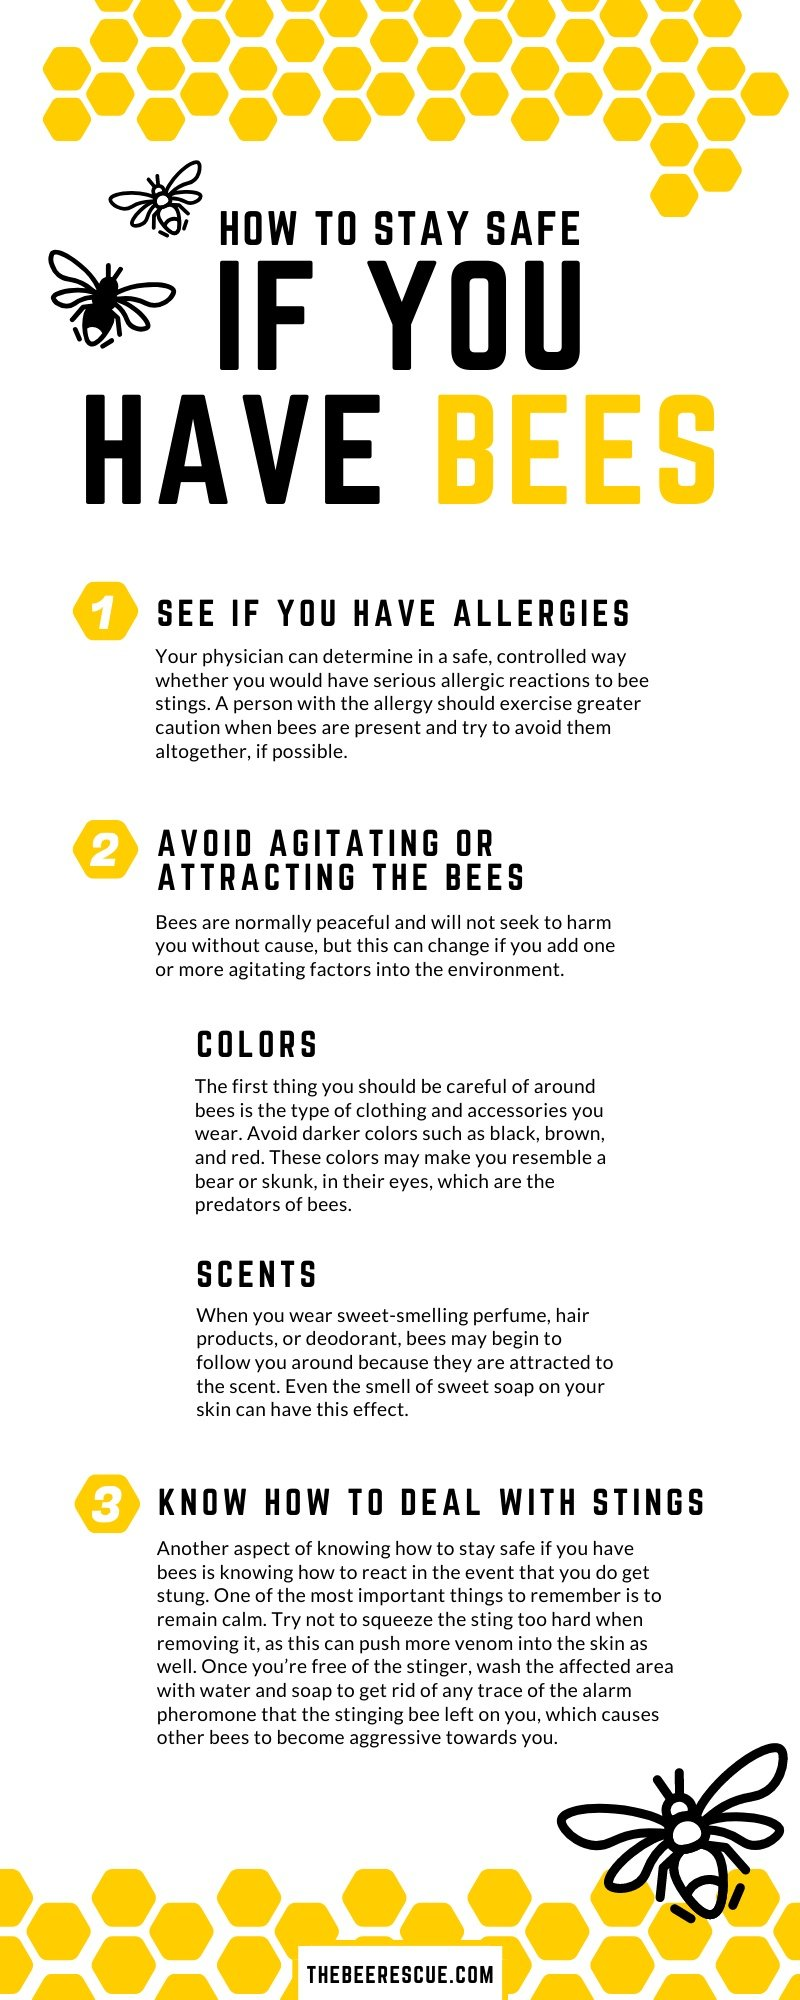 How to Stay Safe If You Have Bees